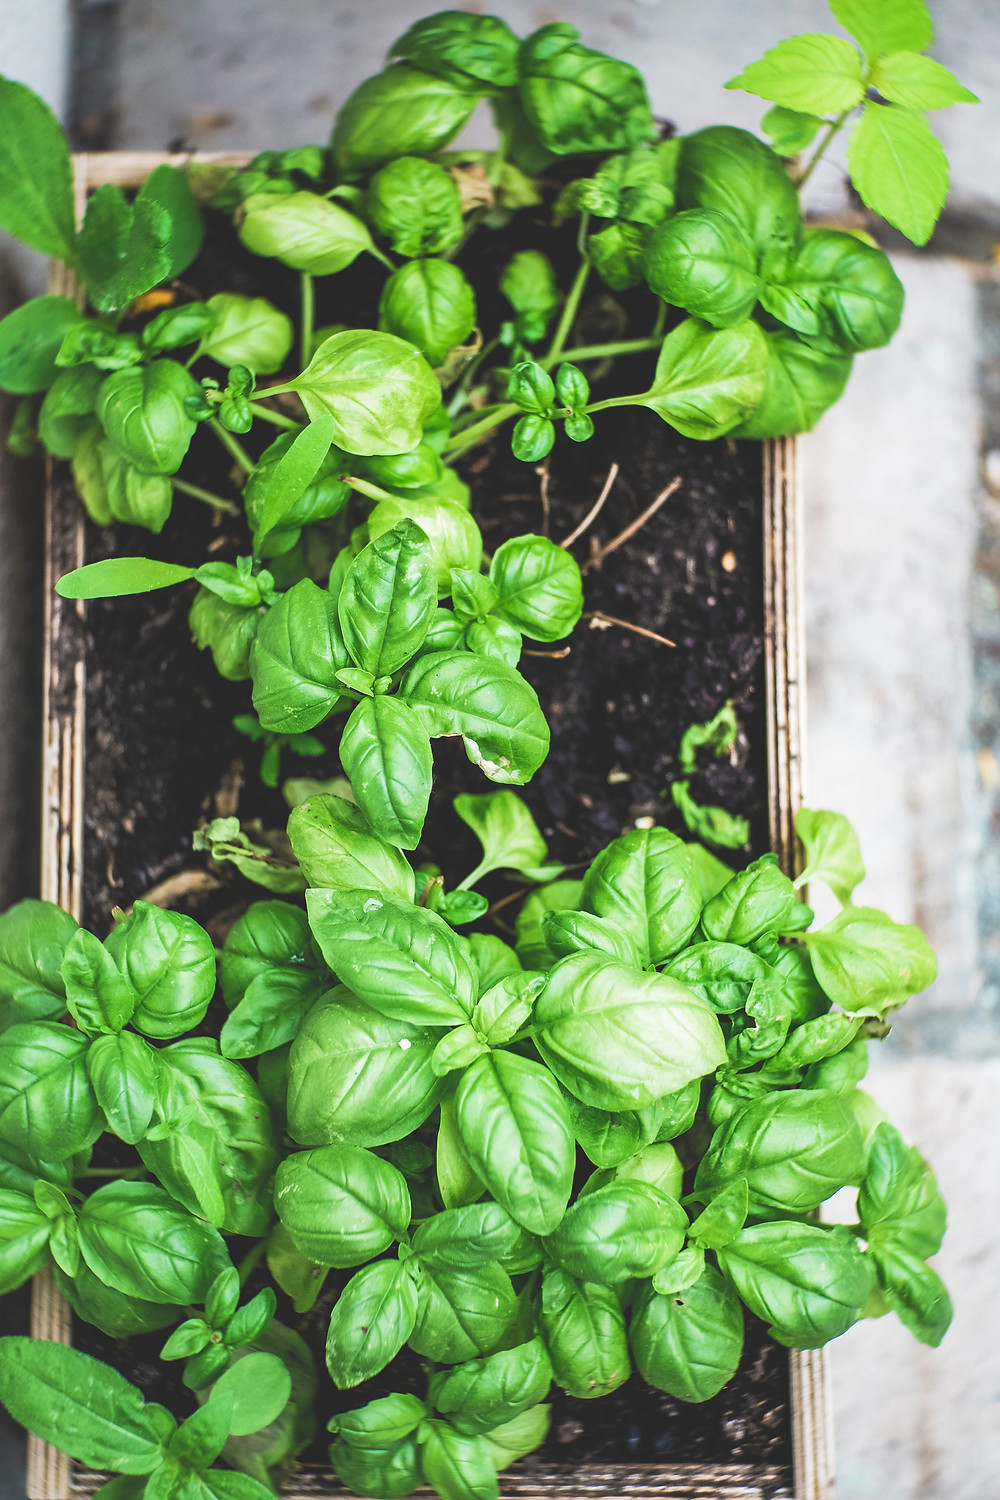 basil is a natural source of fenchol terpenes